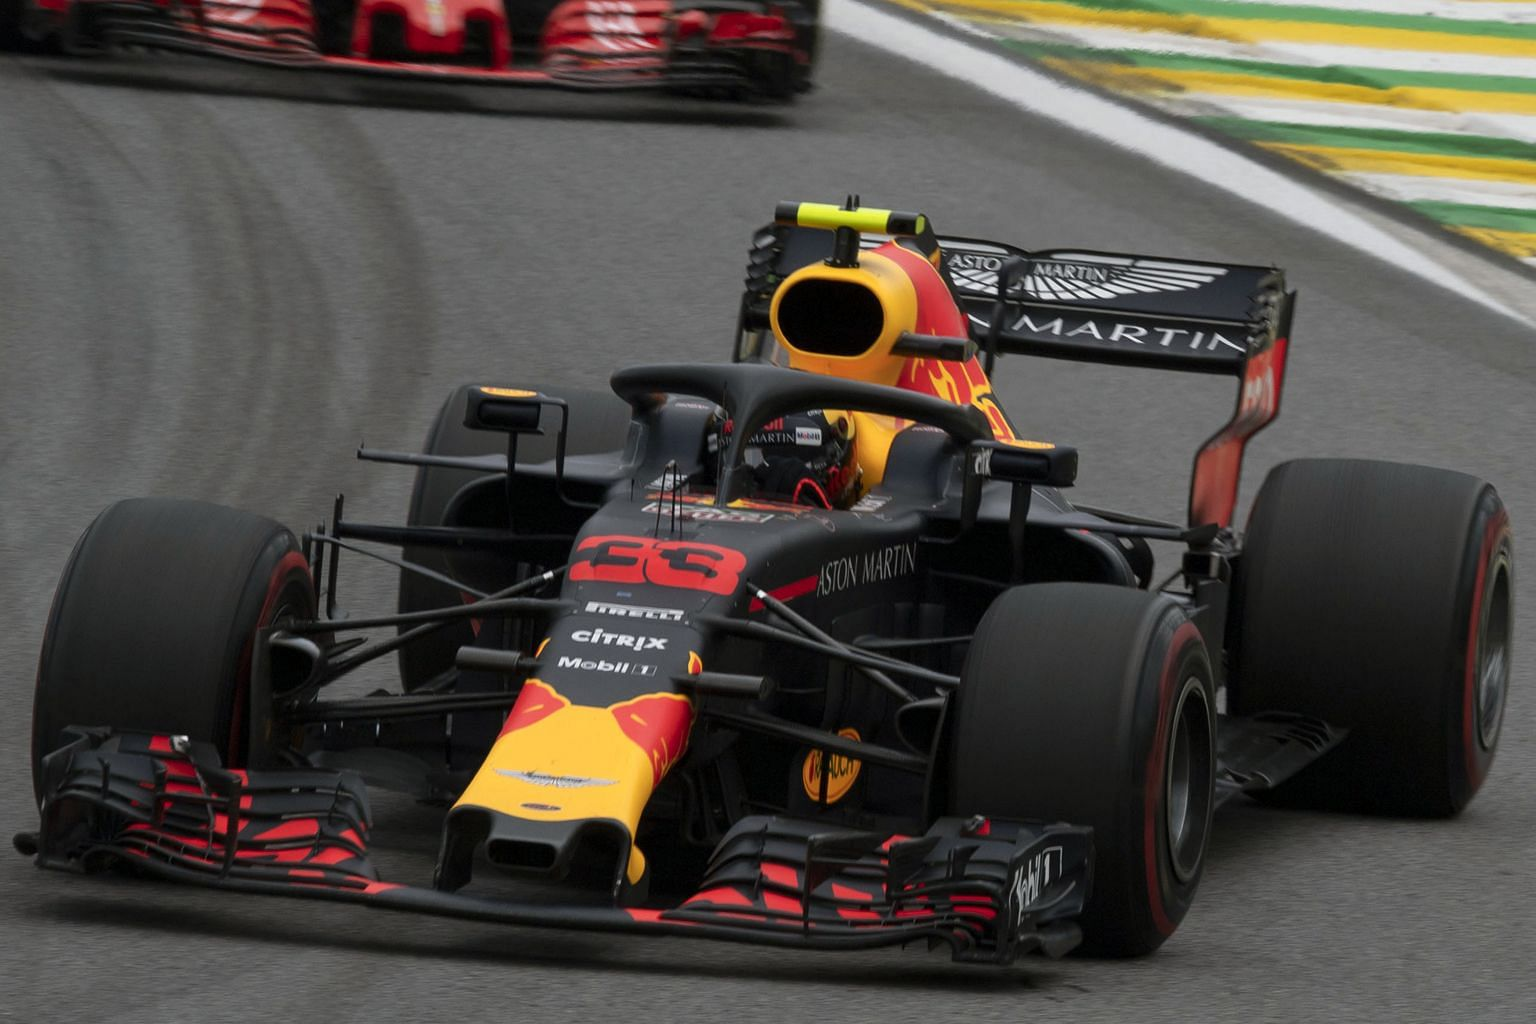 Red Bull's Max Verstappen confronted Esteban Ocon after a collision robbed him of victory at the Brazilian Grand Prix.